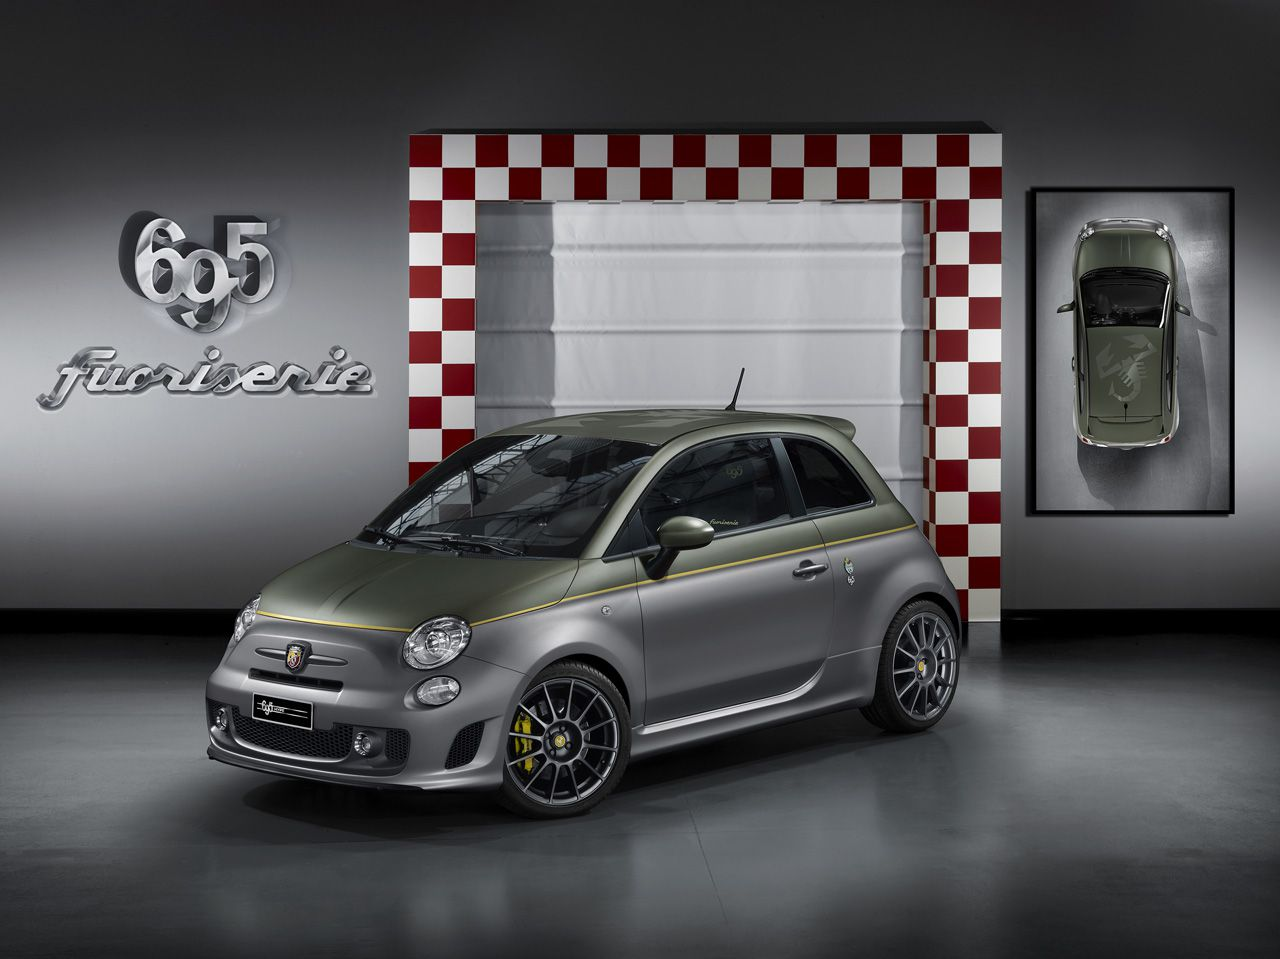 mit fuoriserie individualisiert abarth den fiat 500 n. Black Bedroom Furniture Sets. Home Design Ideas